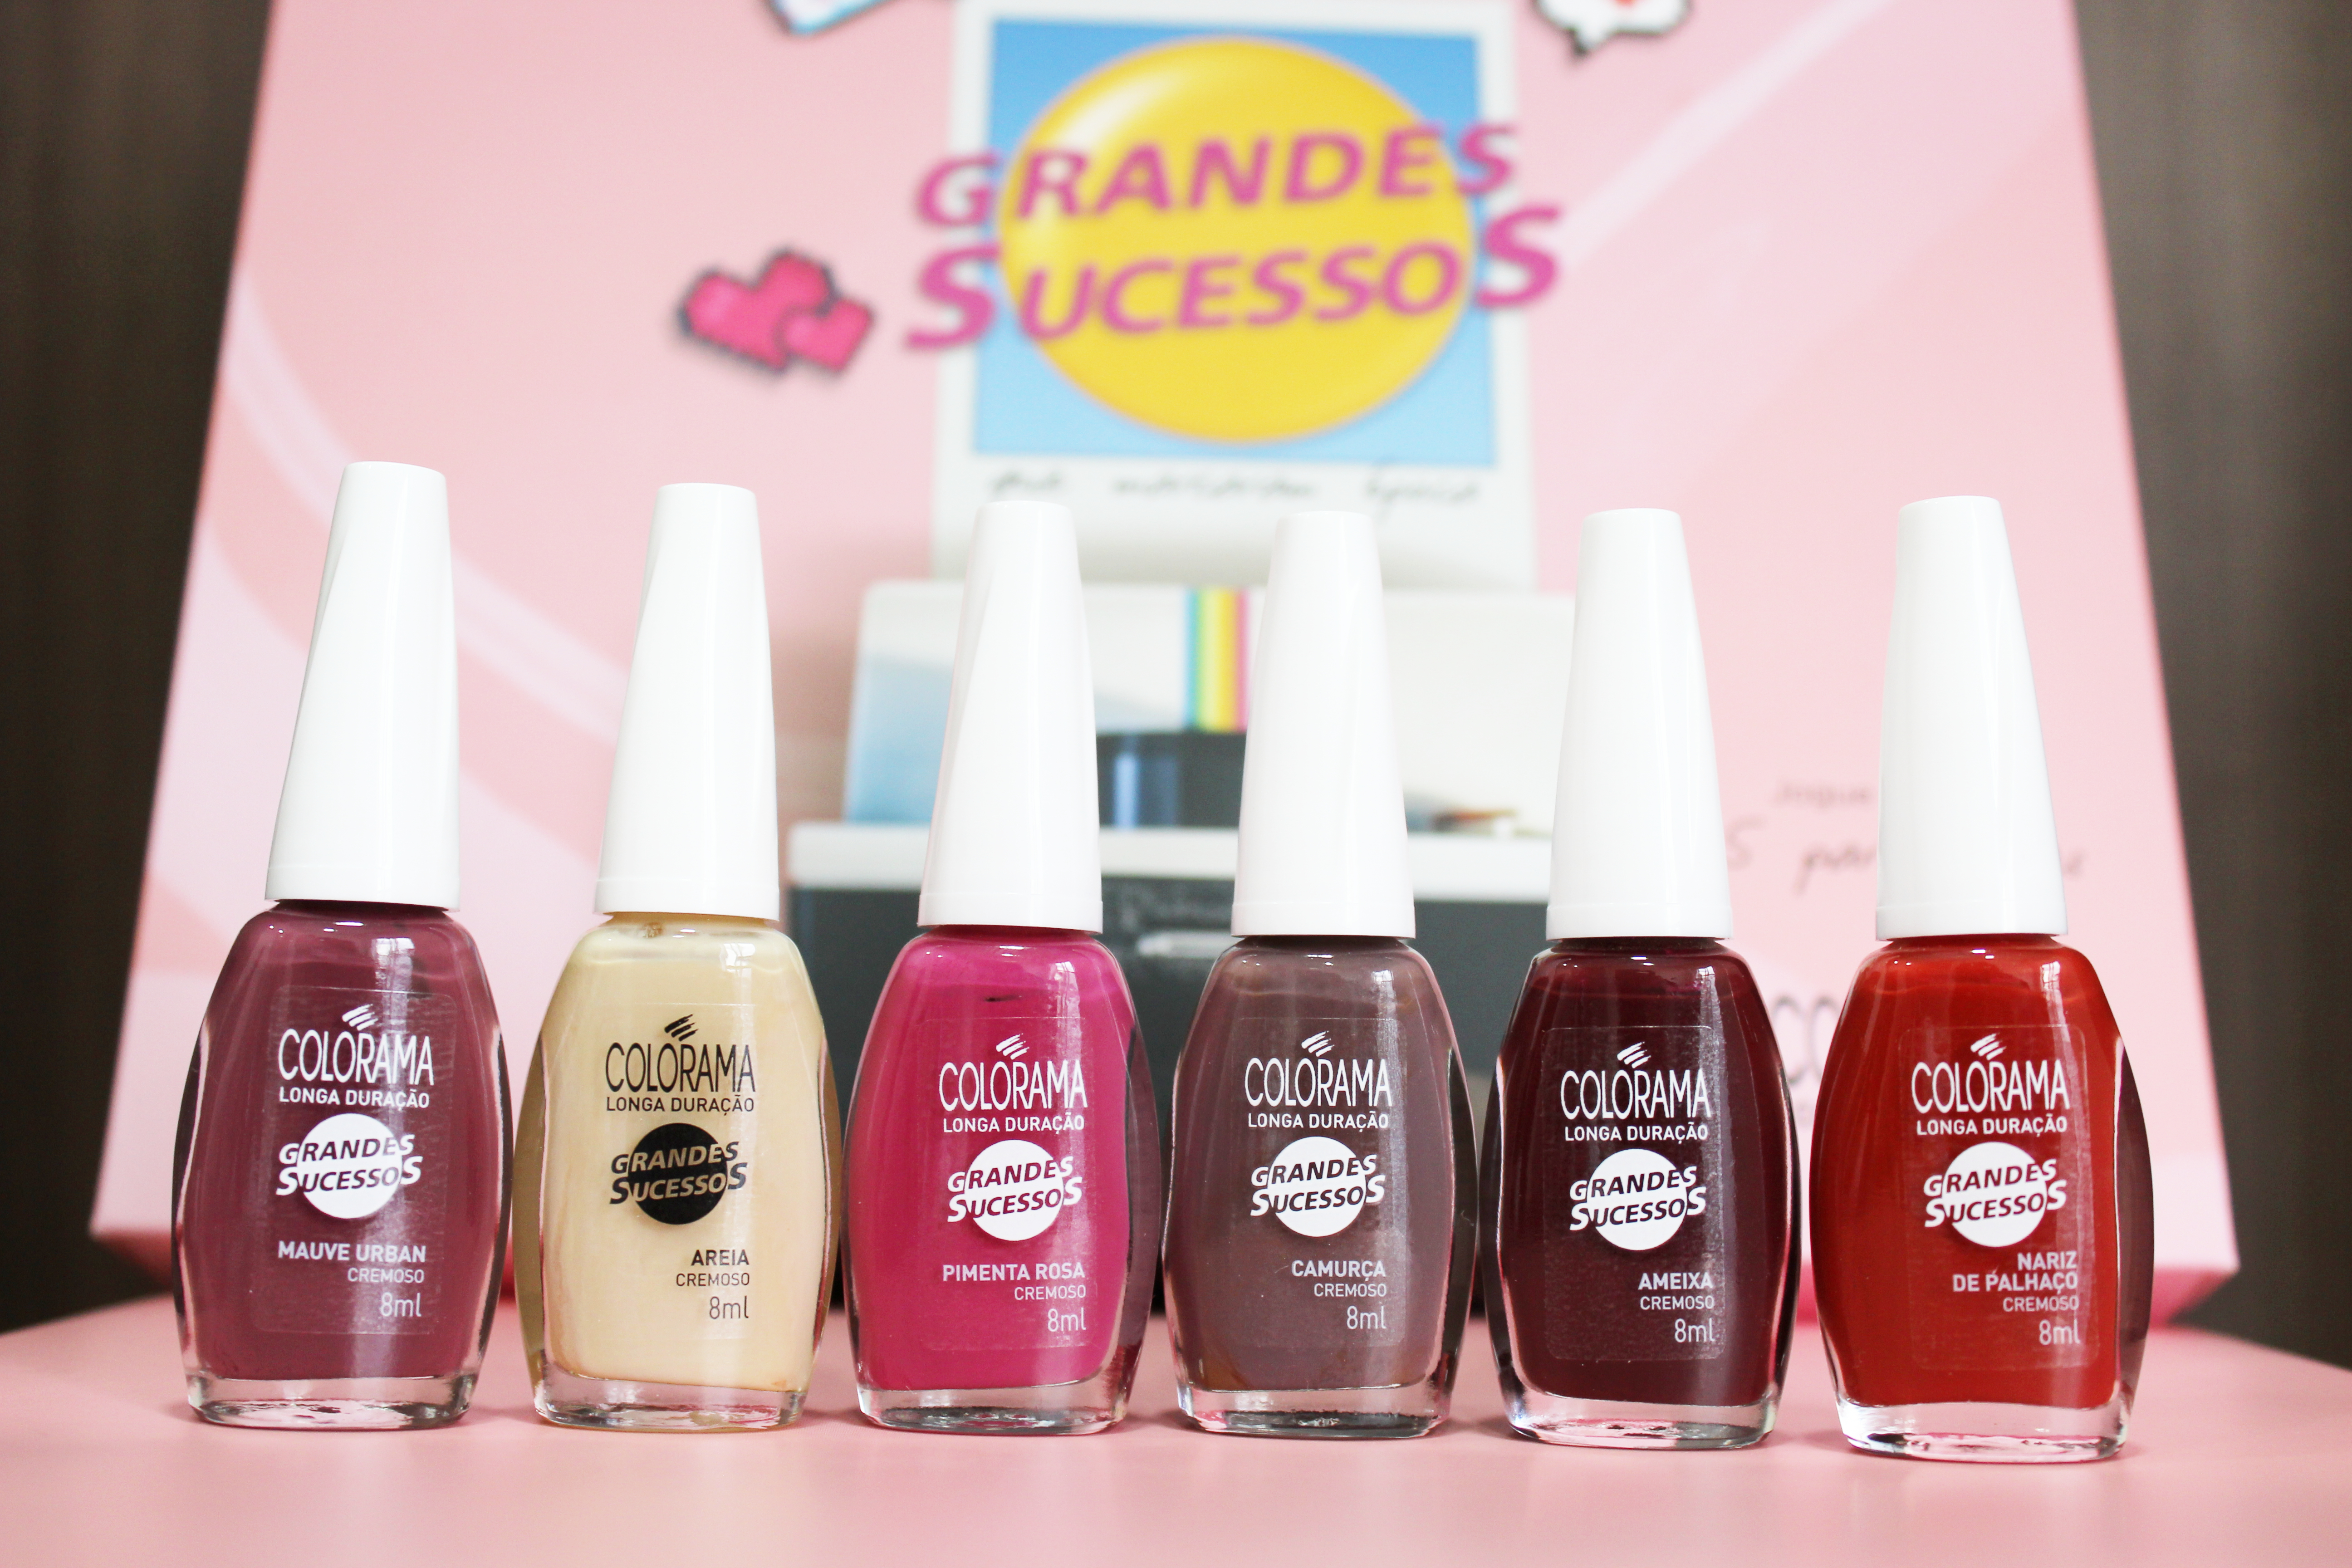 [Swatches] Grandes Sucessos da Colorama!